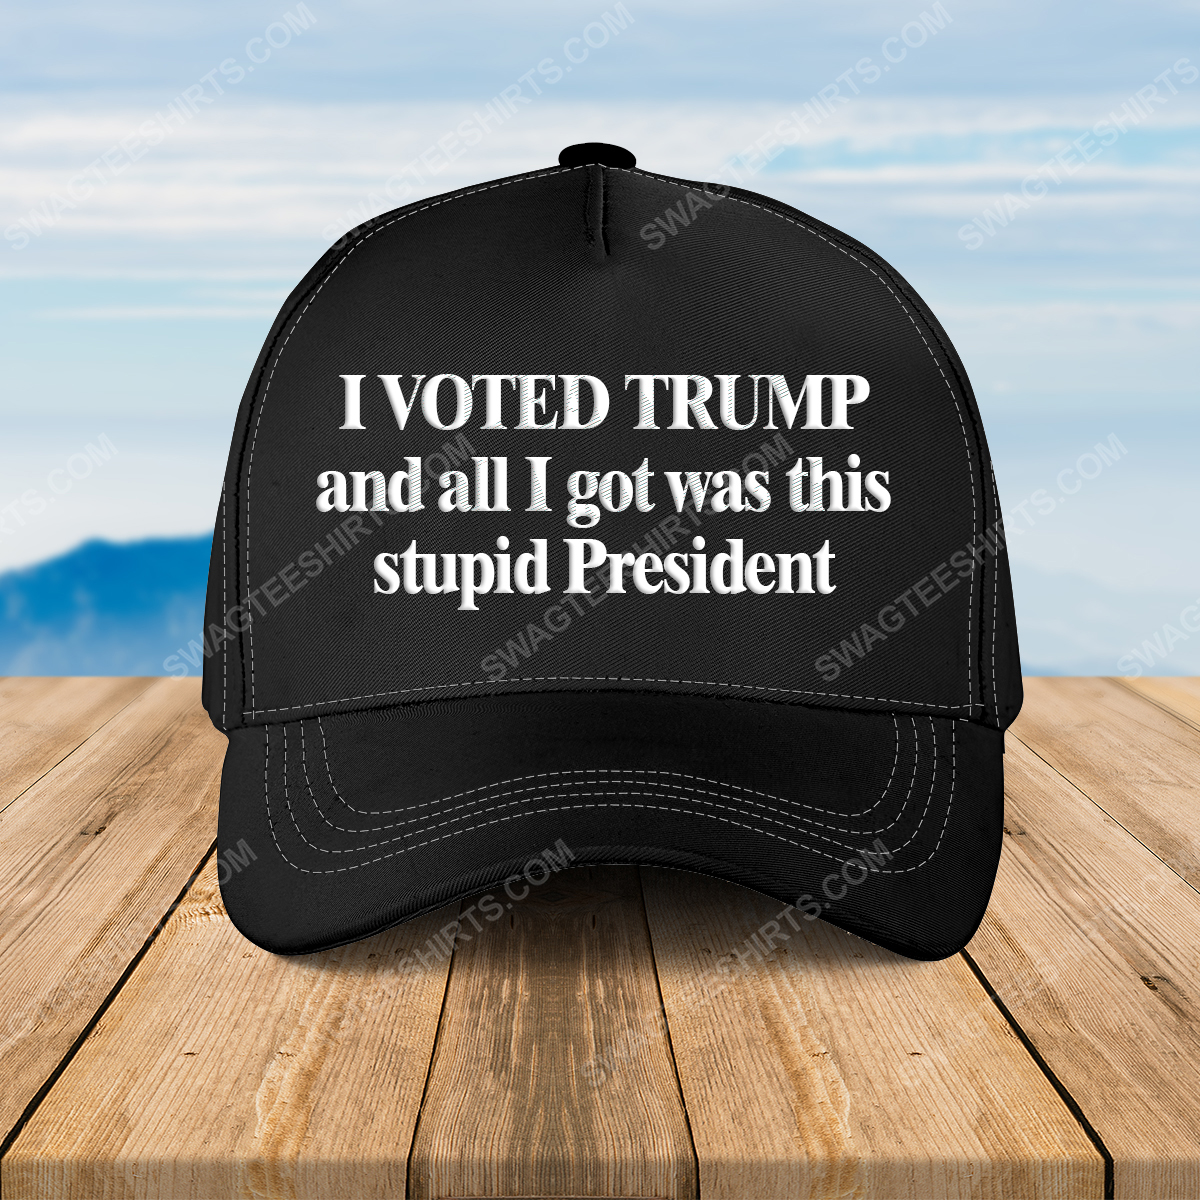 I voted trump and all i got was this stupid president full print classic hat 1 - Copy